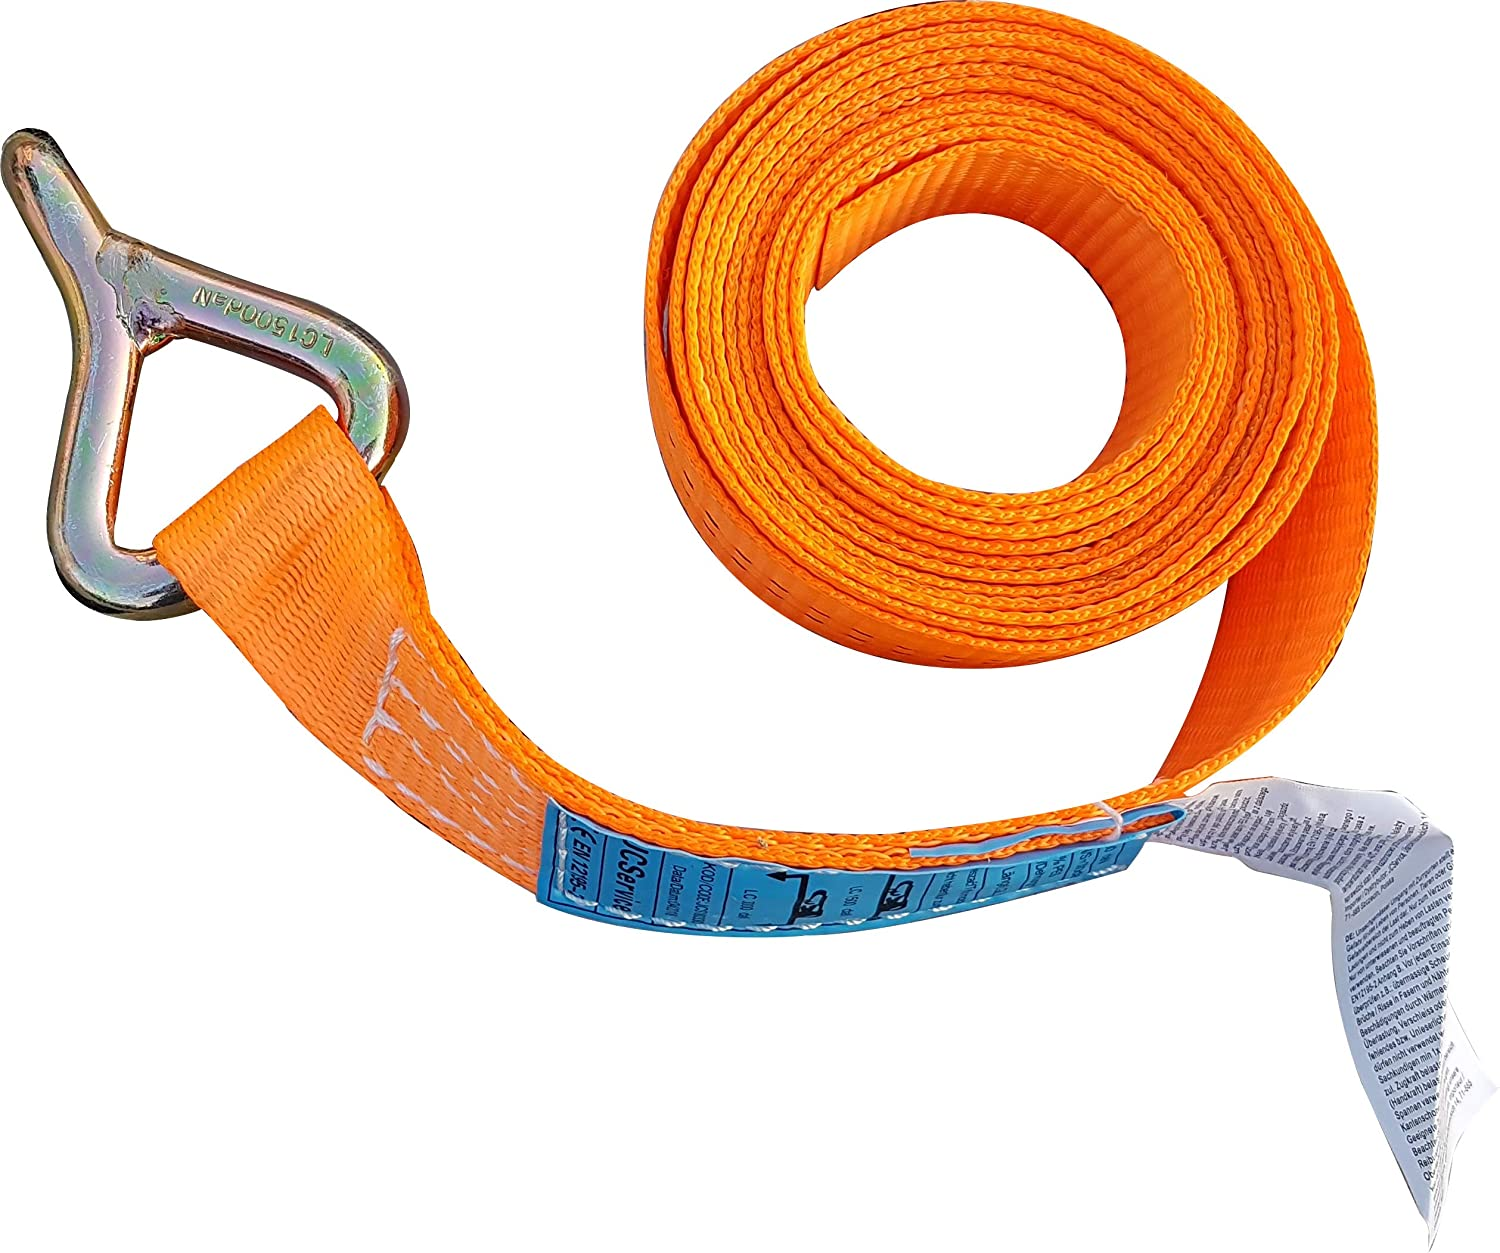 Sangle d'arrimage Professionnelle 35 mm J Hook Orange Sangles d'arrimage Sangle d'arrimage Sangle d'arrimage Sangle de Transport de Voiture JCS Service